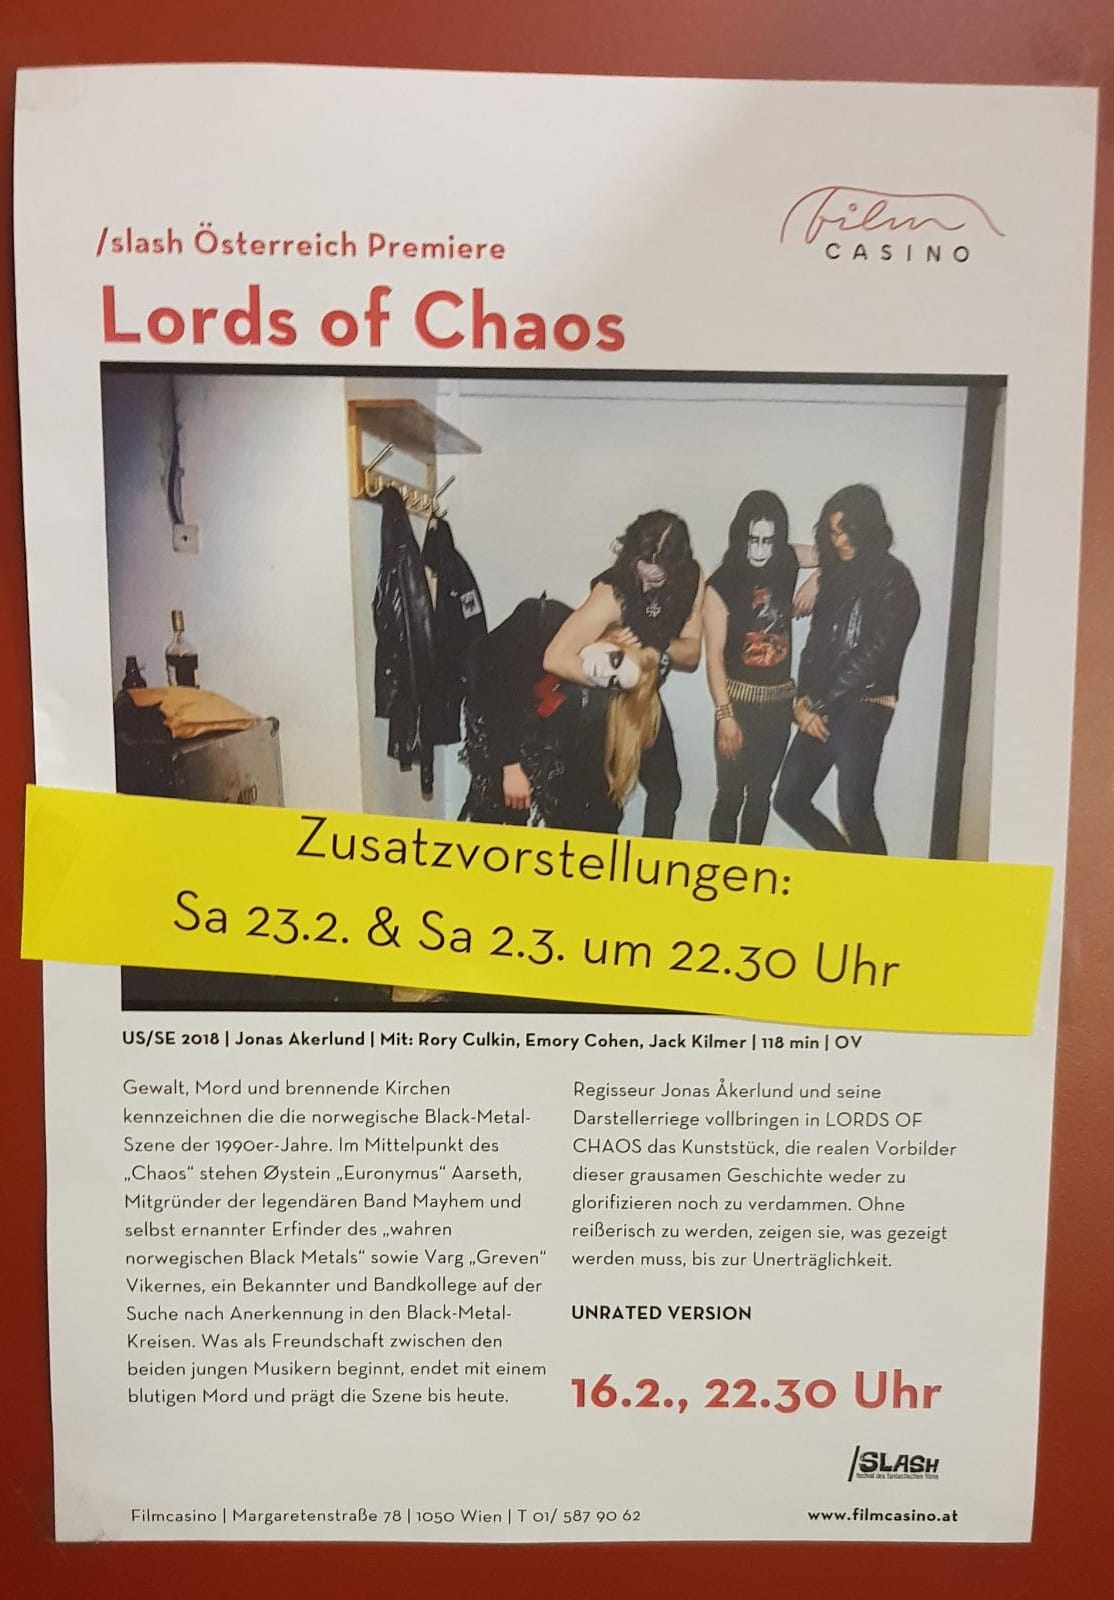 lords-of-chaos-review-filmpremiere-16-02-19-wien